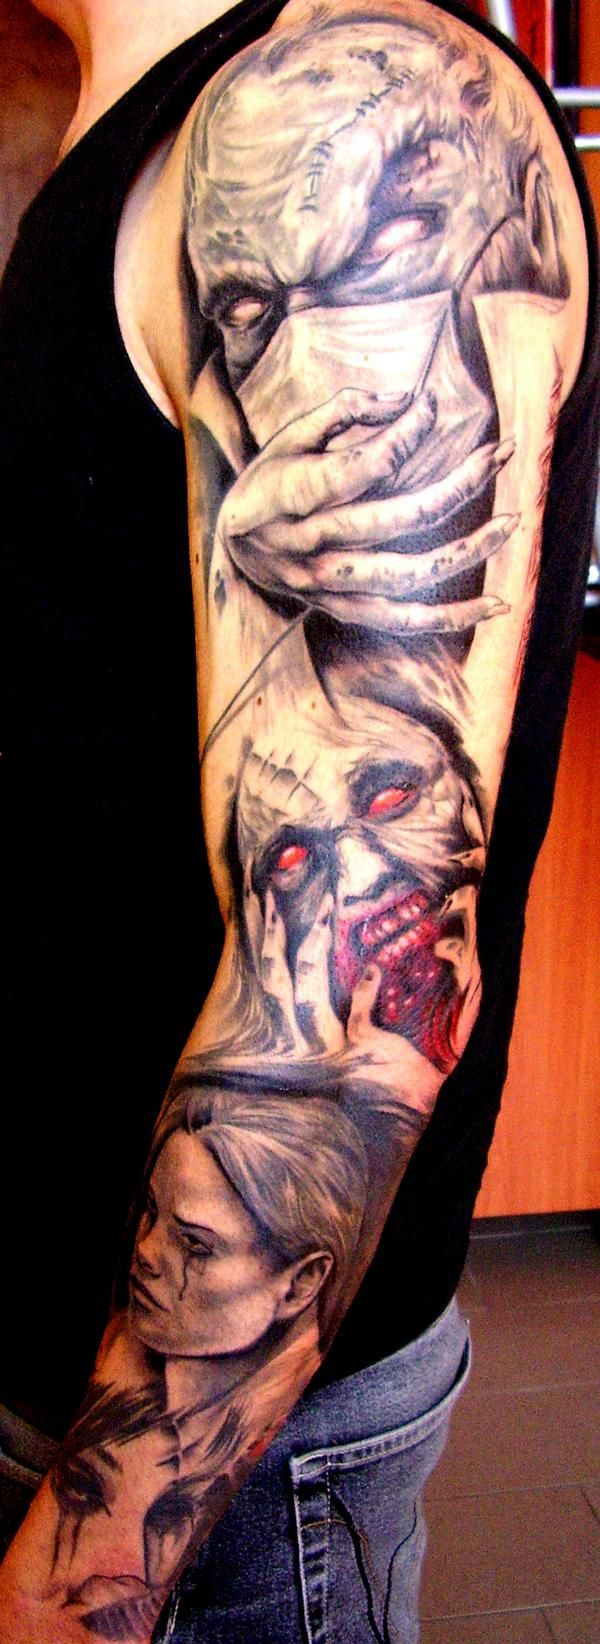 Morbid but fab art work.....Matteo39s tattoo